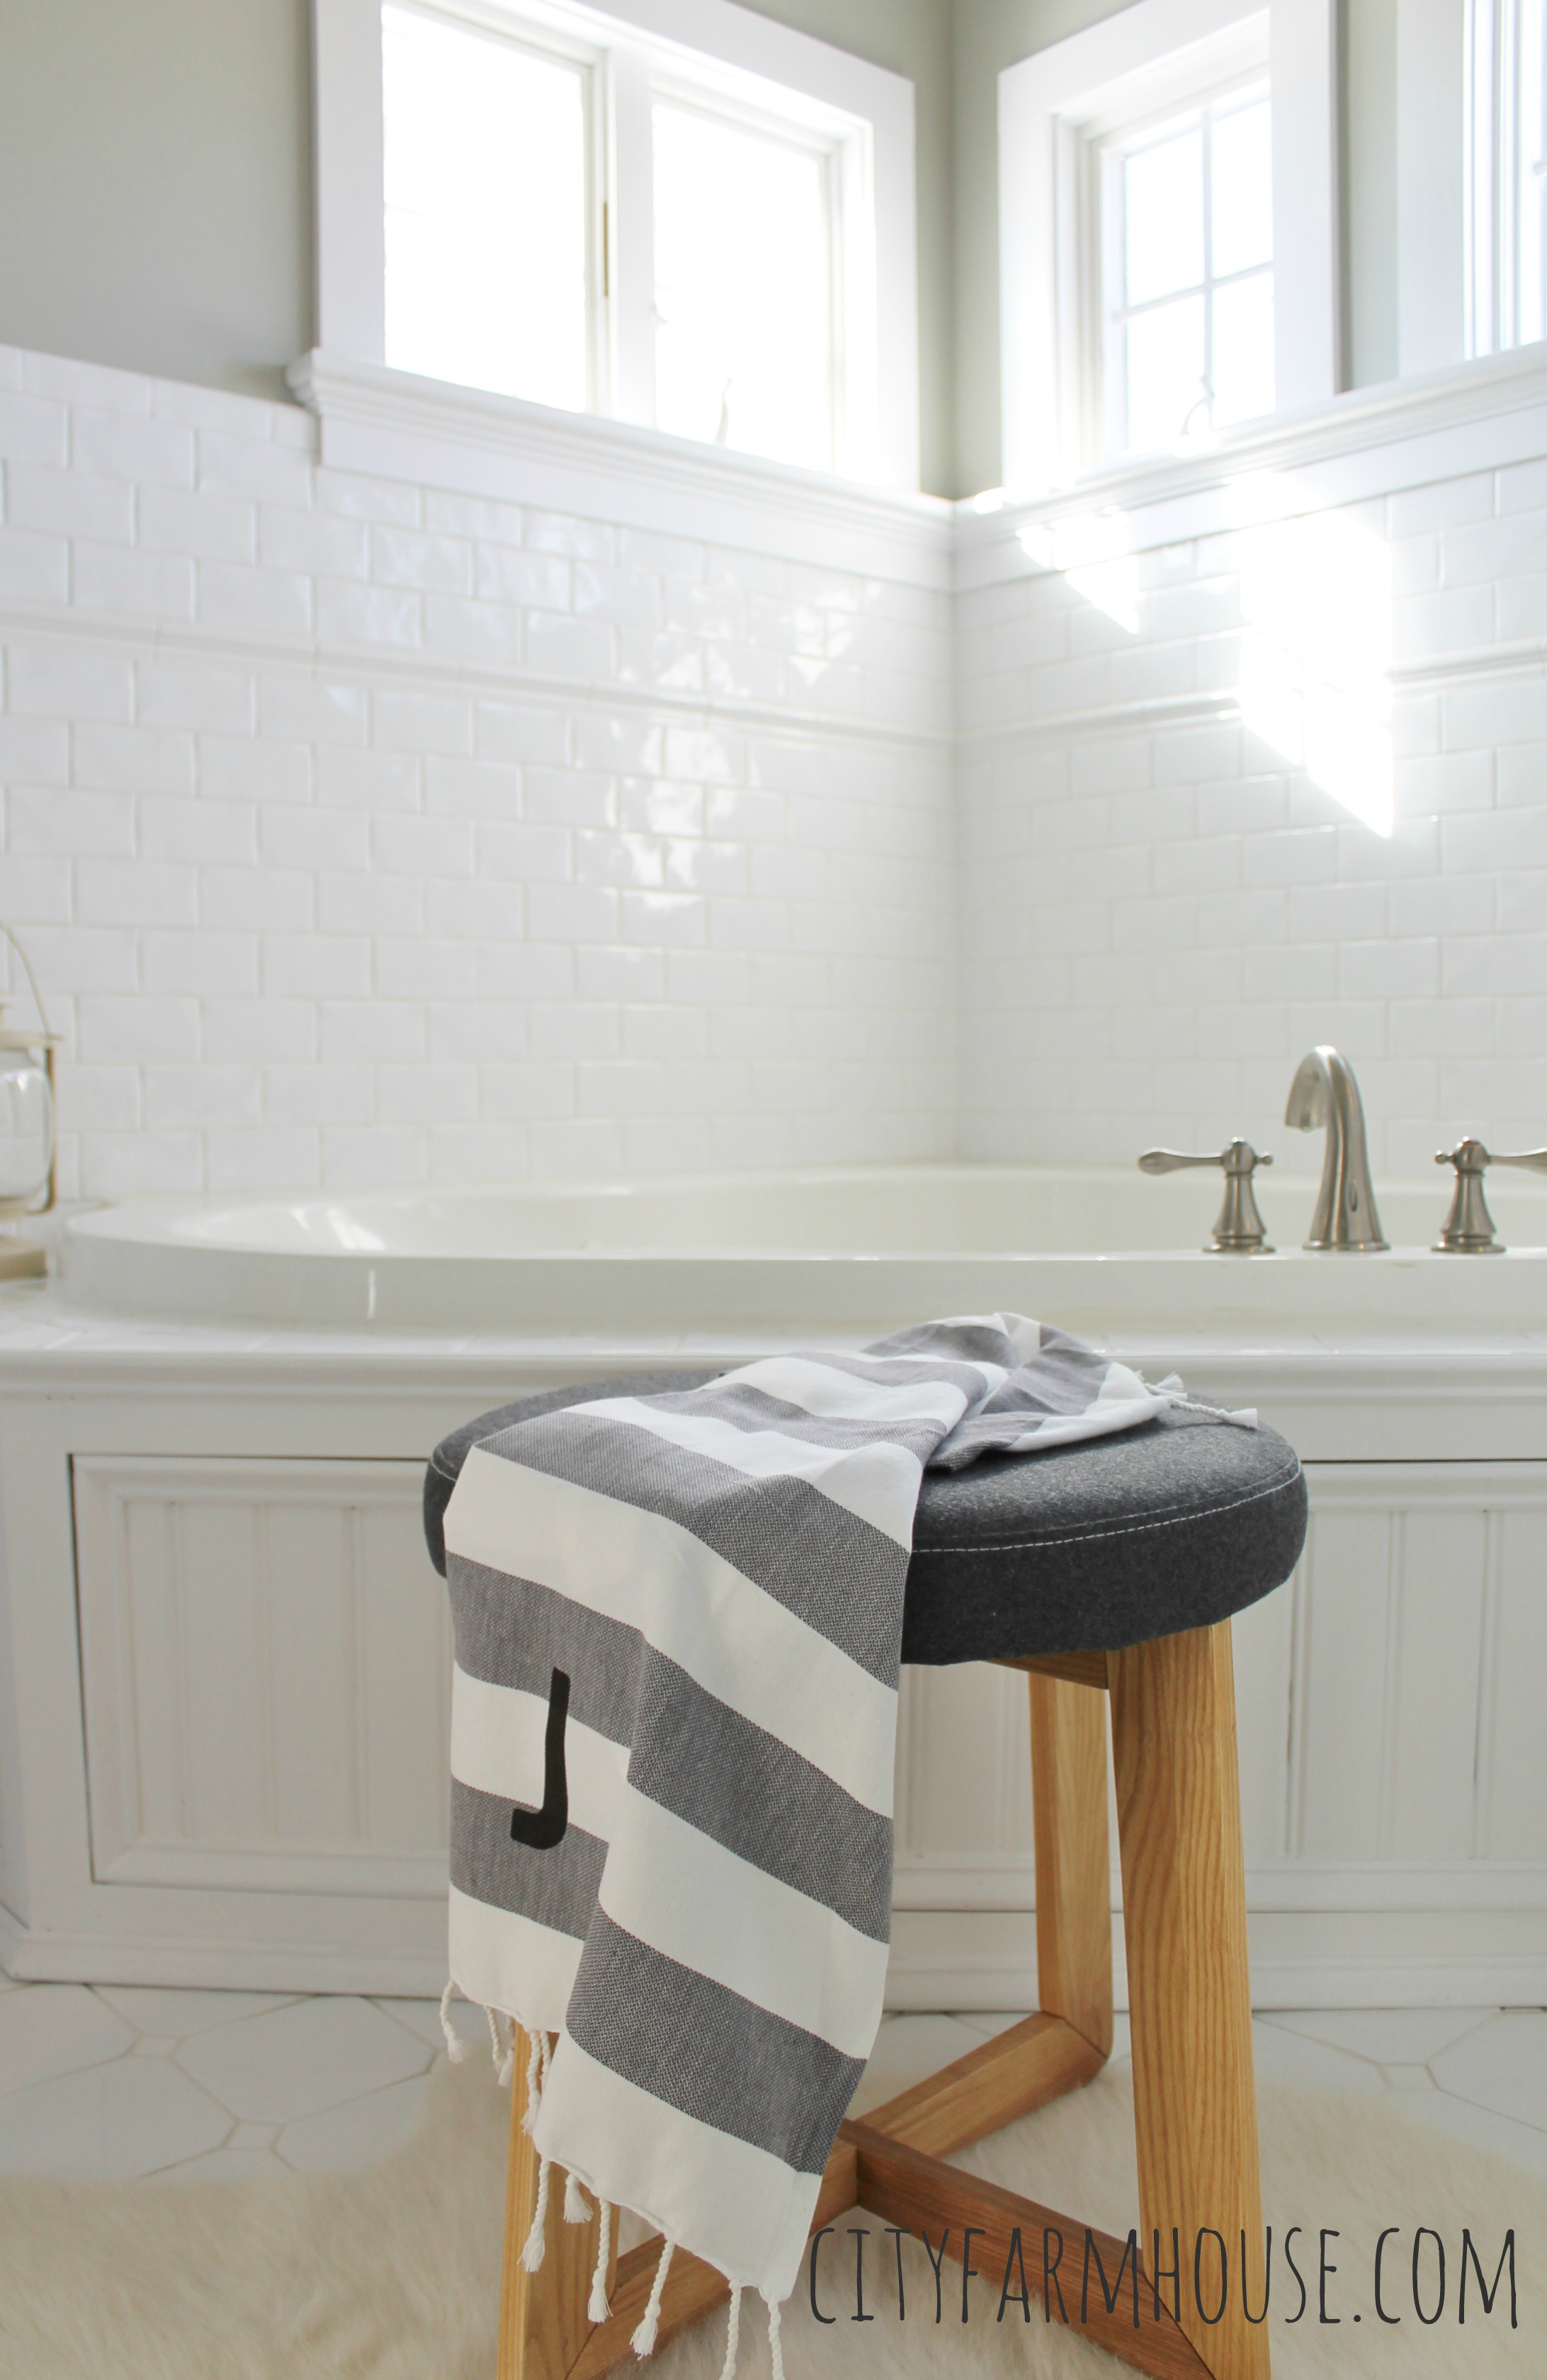 White Subway Tile & Classic Small Windows, Wall Color Olympic- Sprig ...